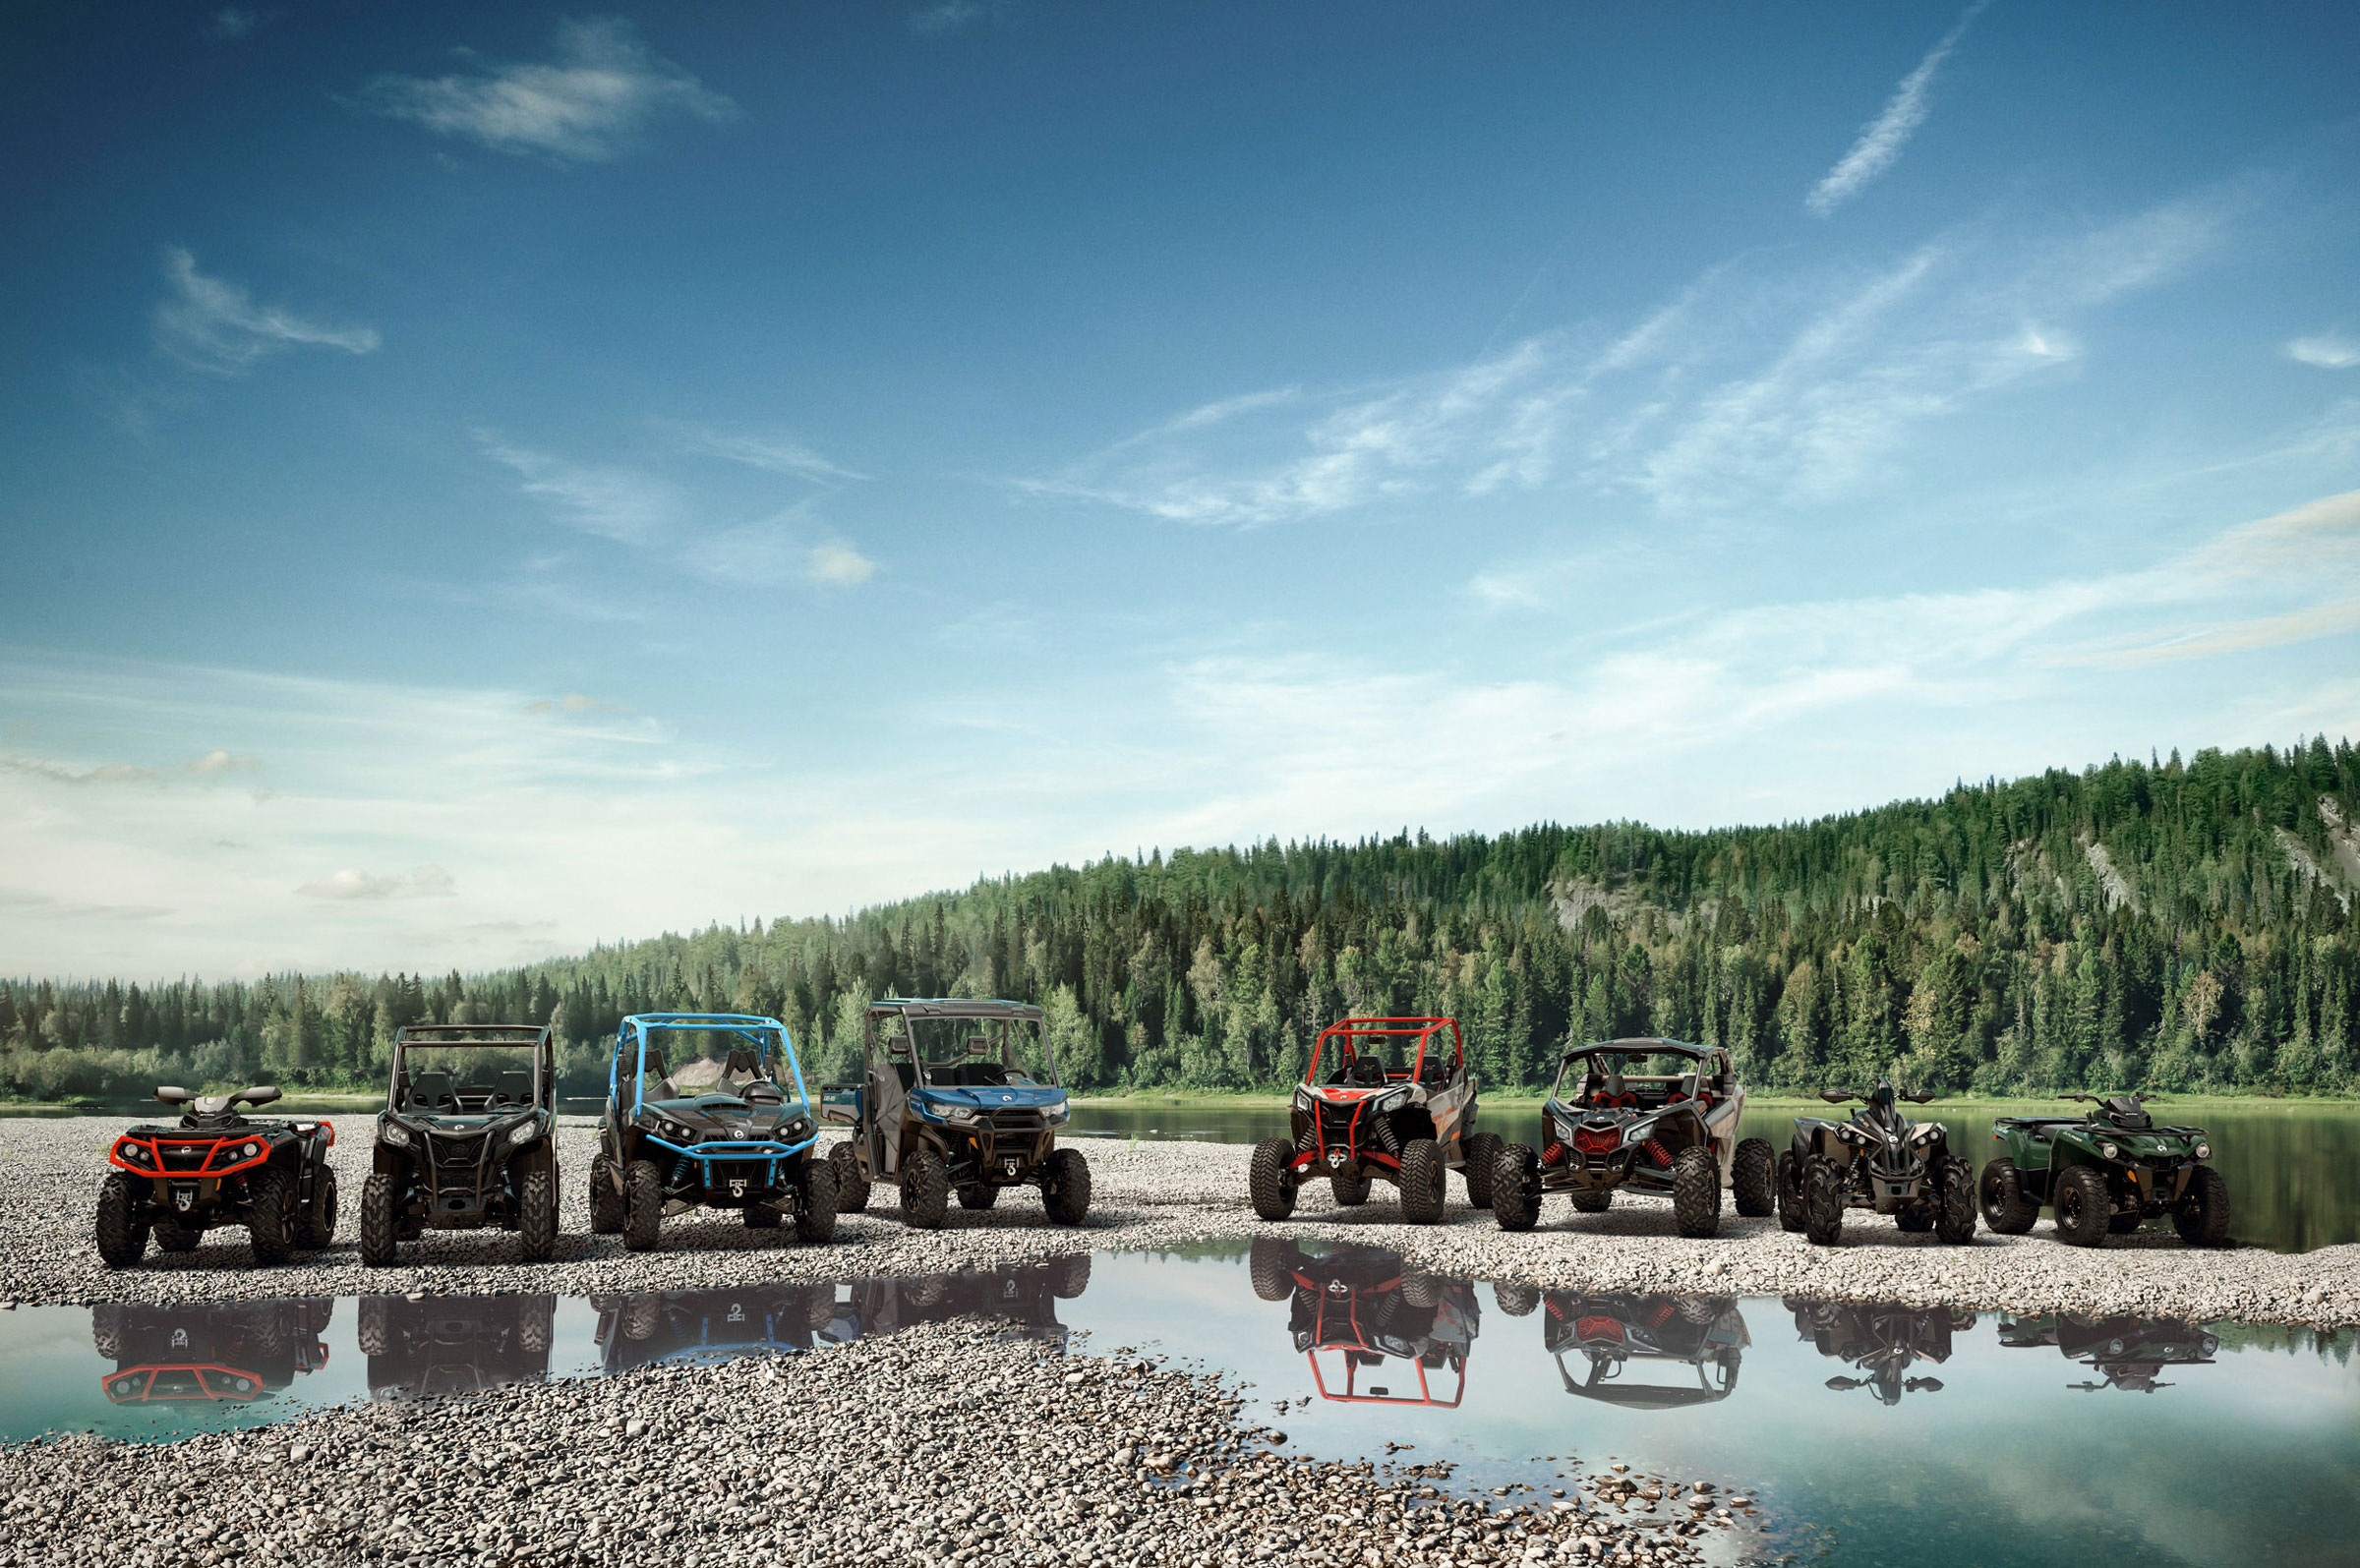 All Can-Am Off-Road ATV & Side-by-Side models near a lake